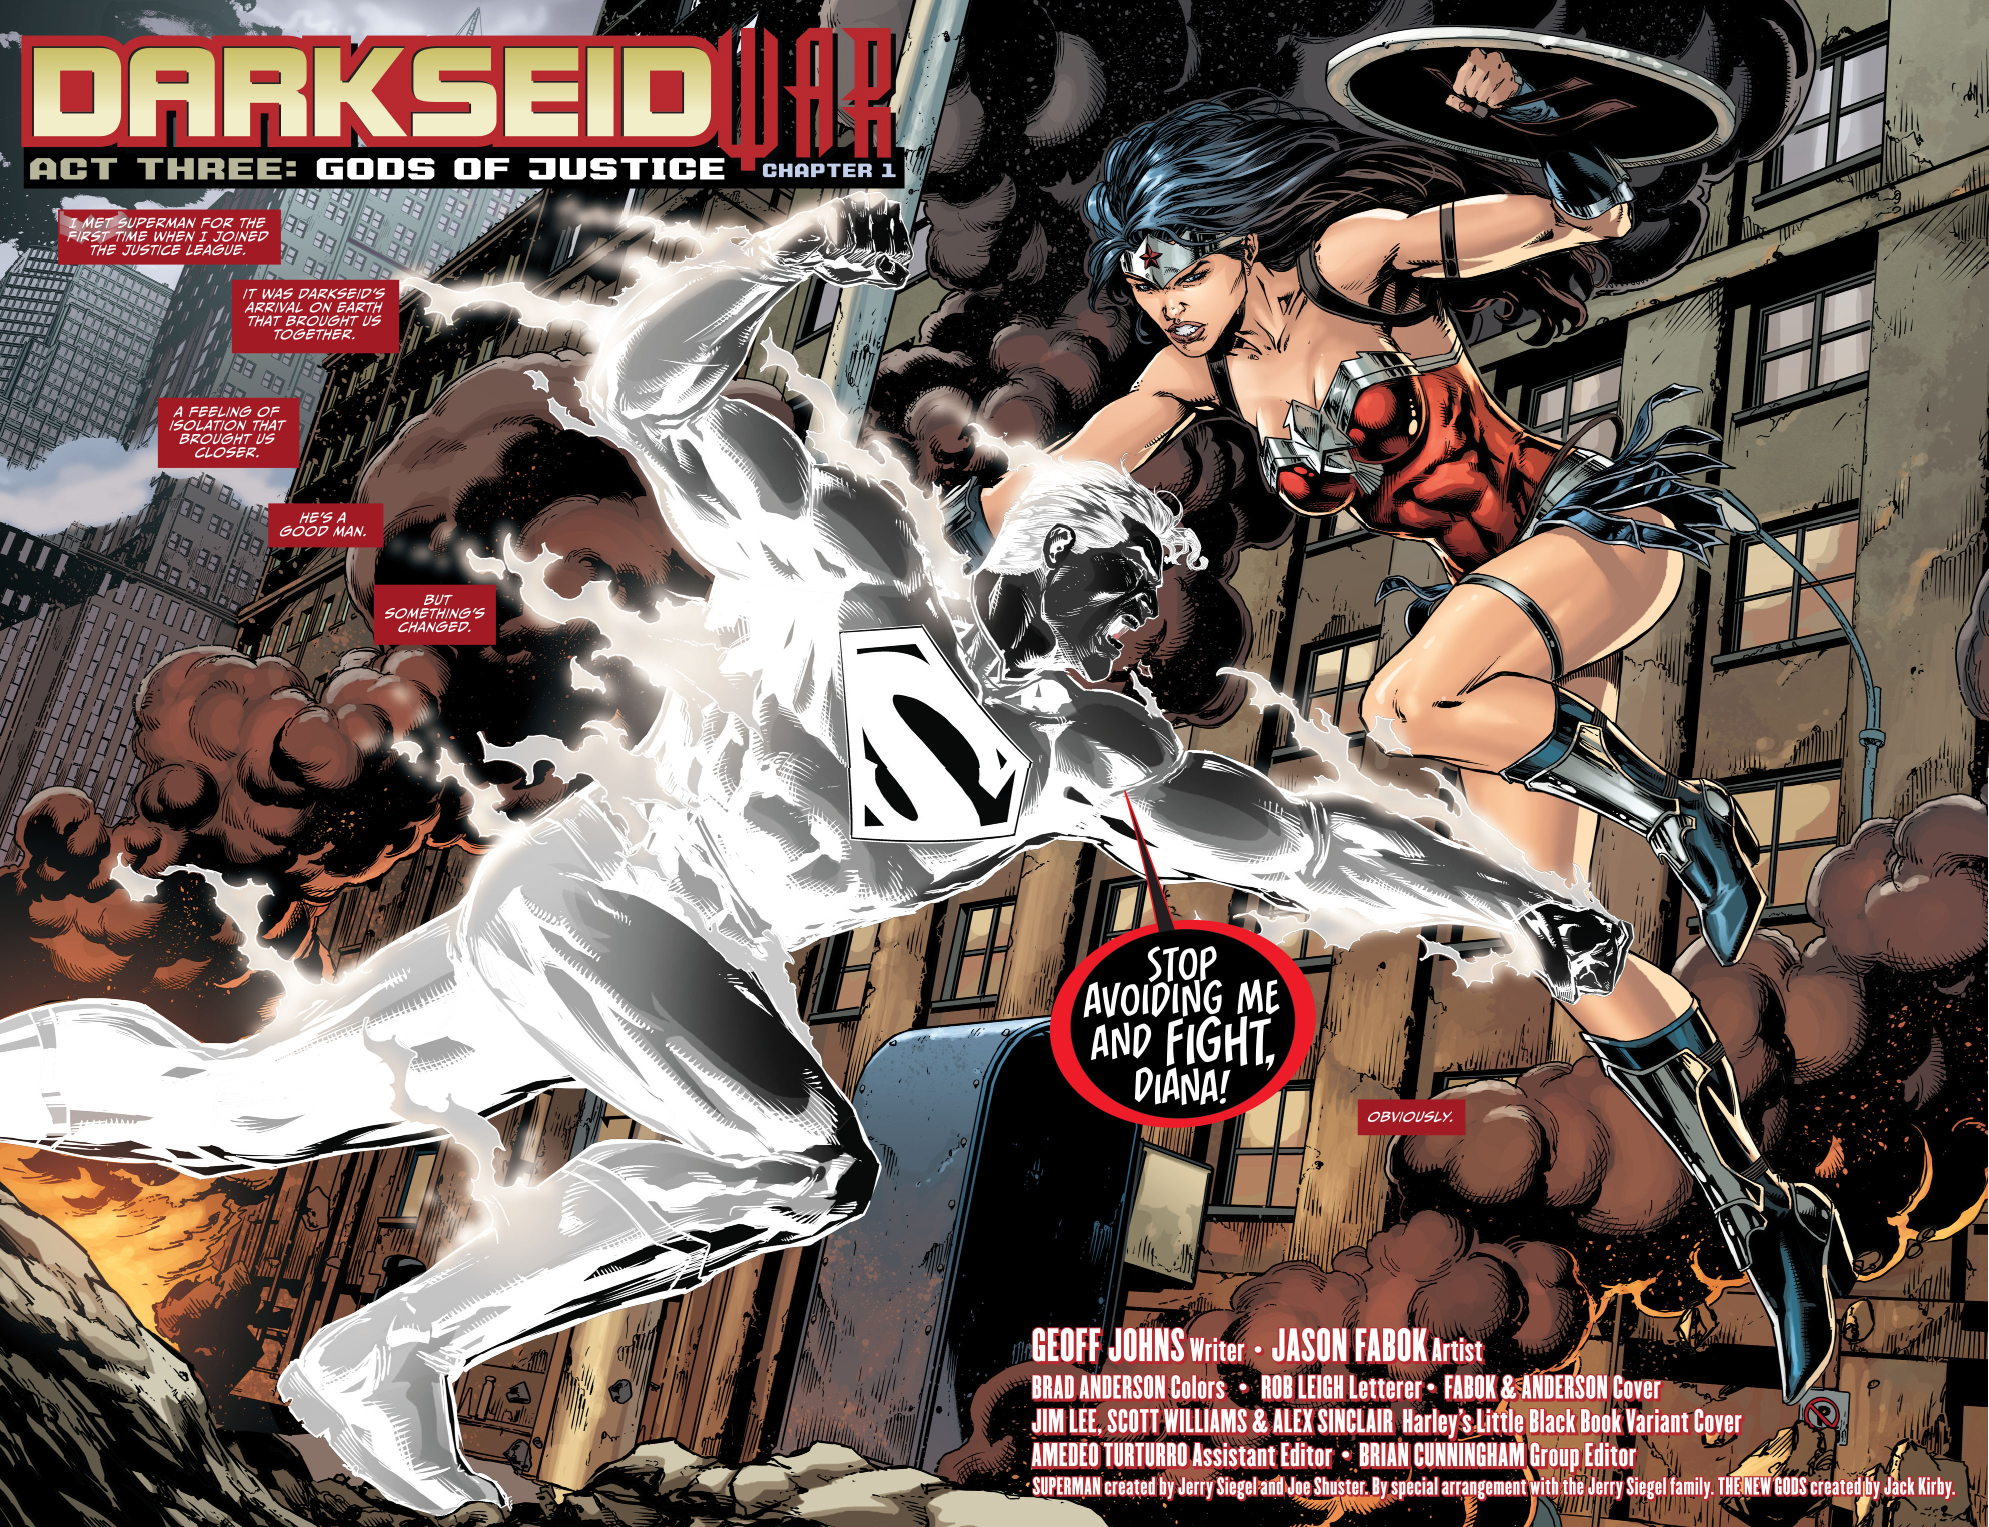 superman vs wonder woman (darkseid war) ...